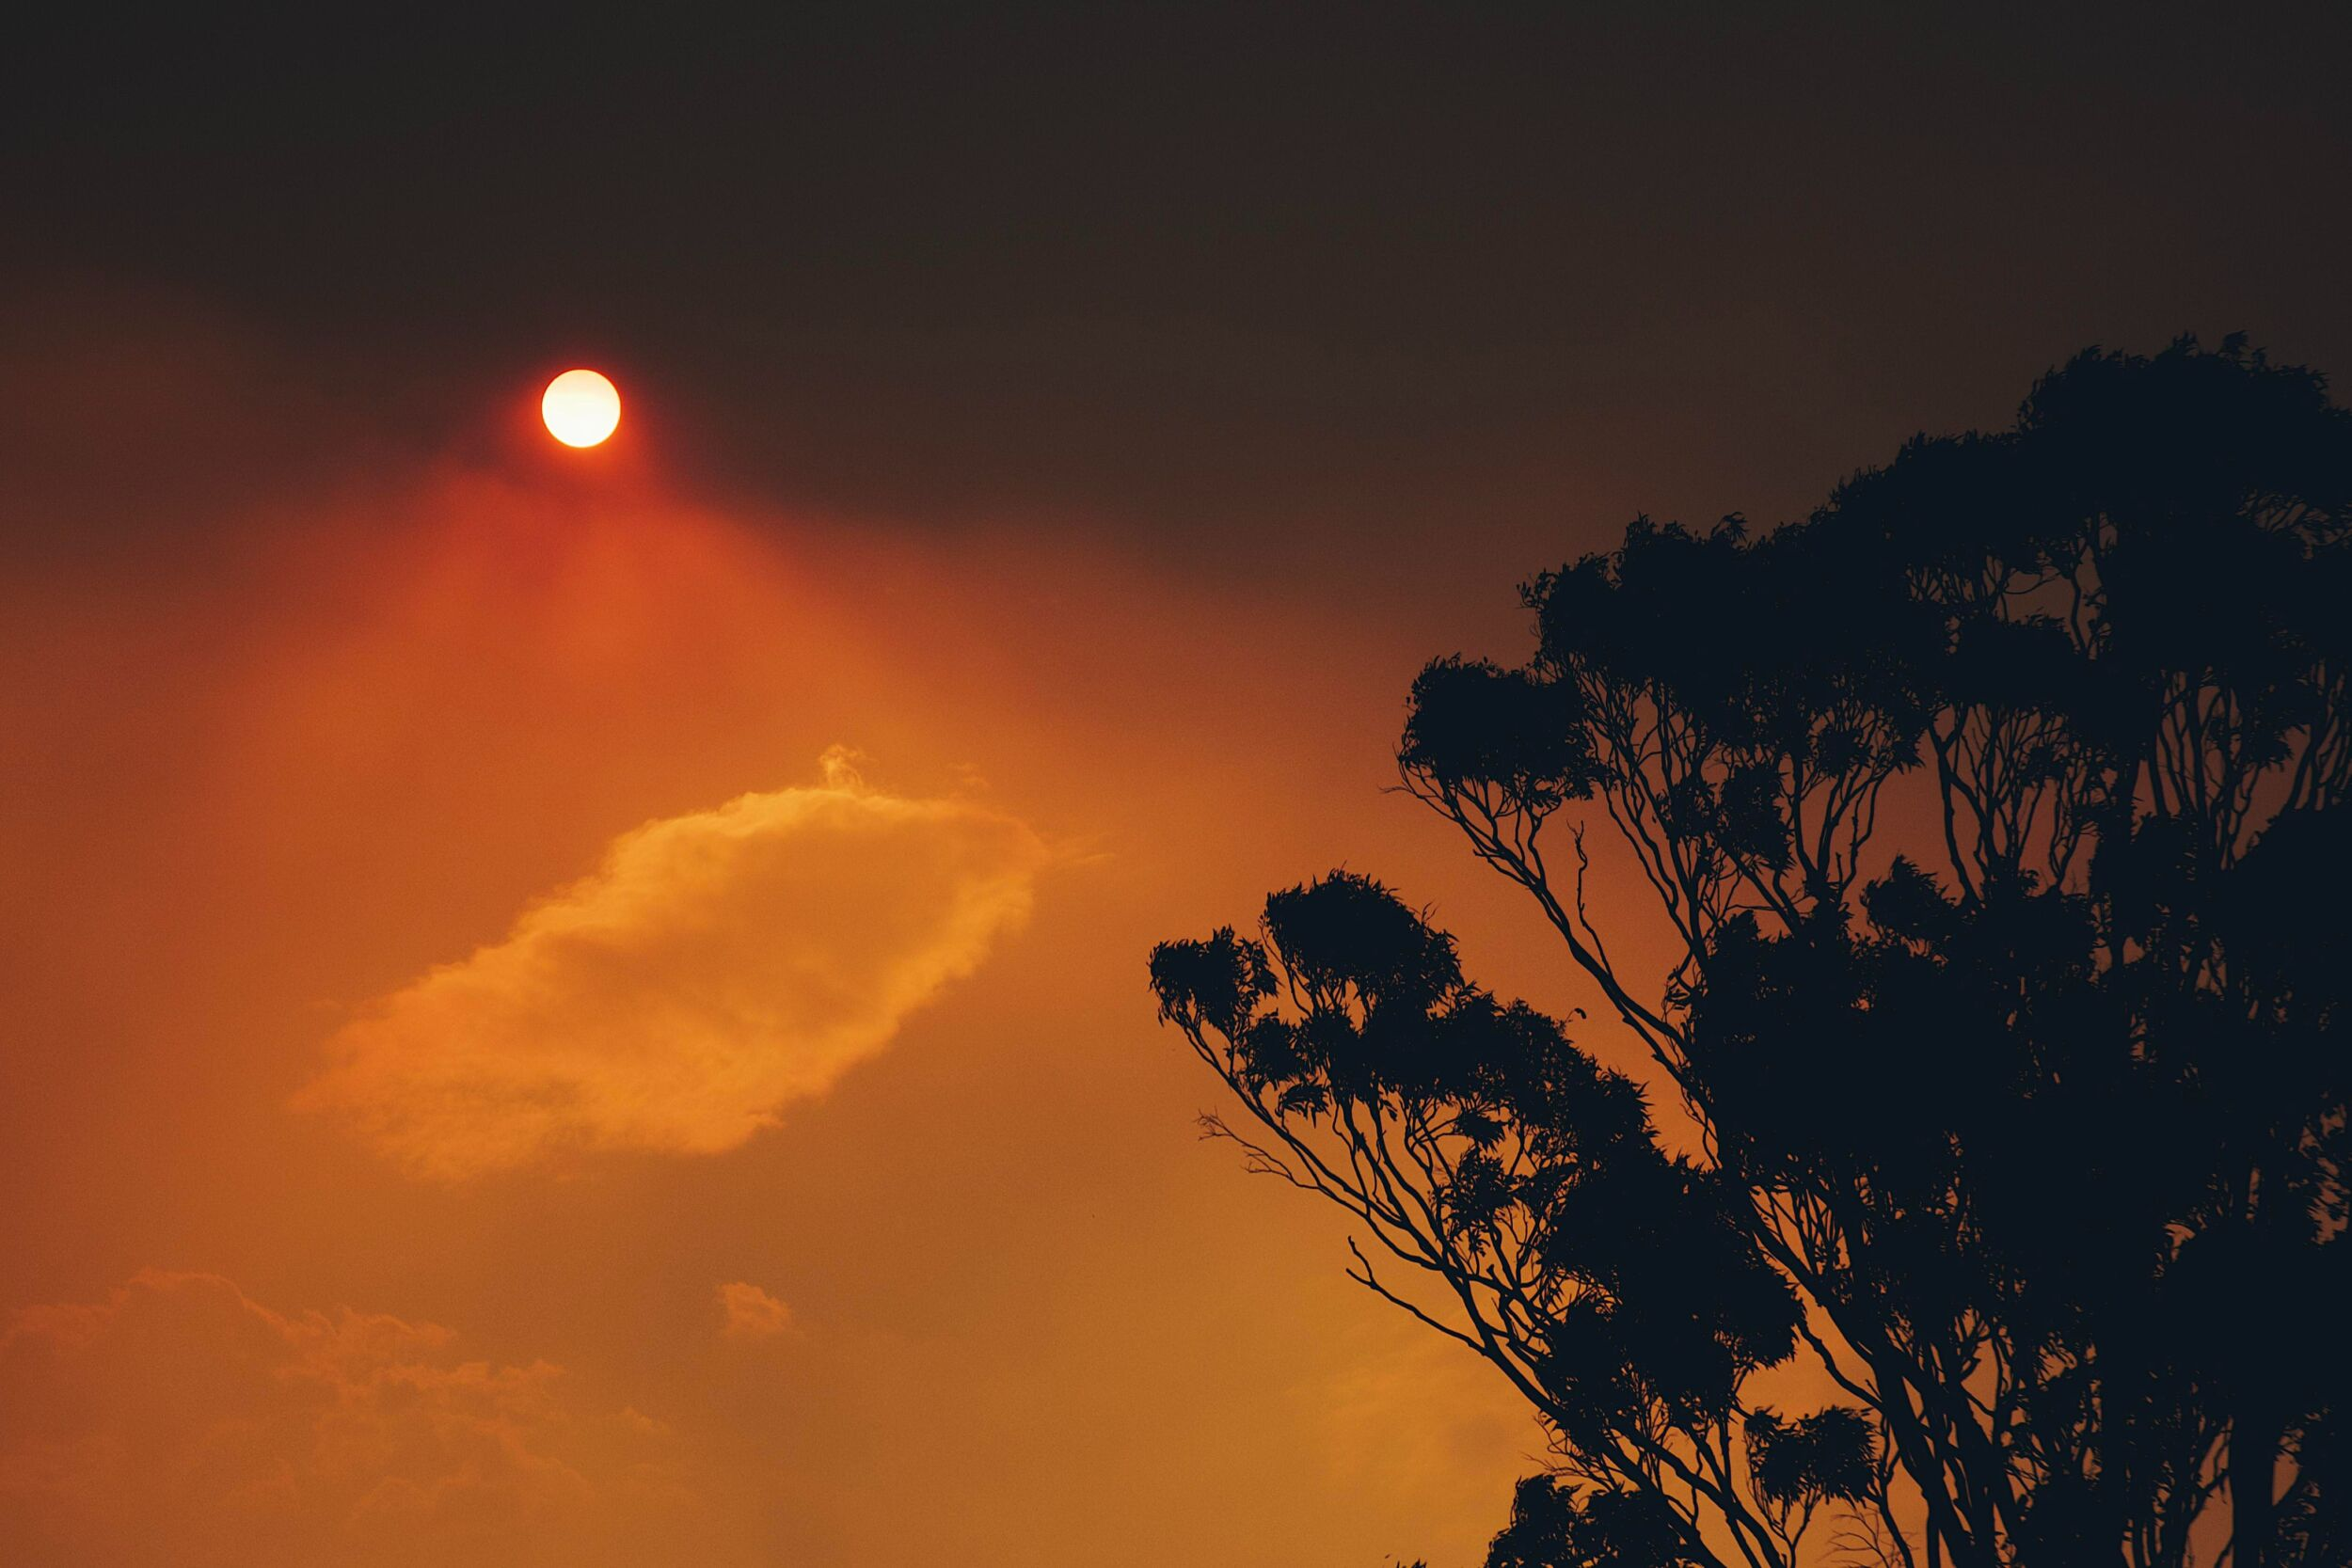 Orange sky and sun due to bushfire smoke, eucalyptus tree on the side of the frame